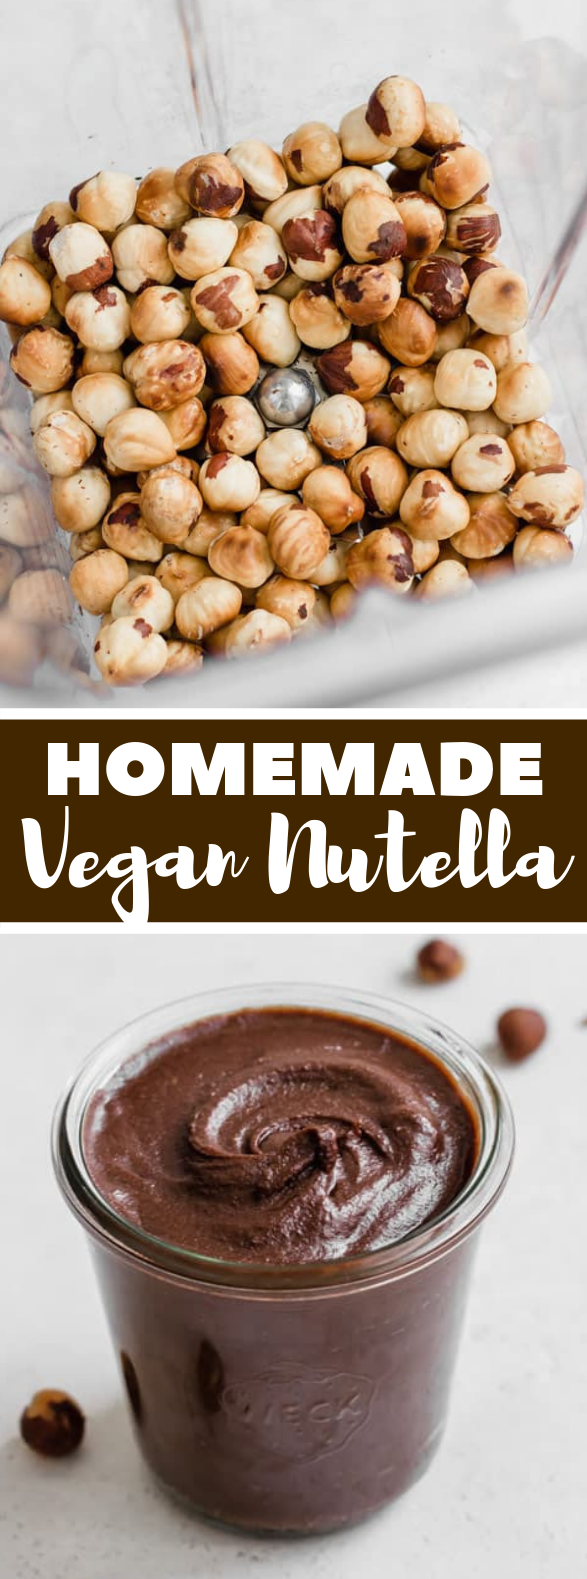 HOMEMADE VEGAN NUTELLA #veganrecipe #vegannutella